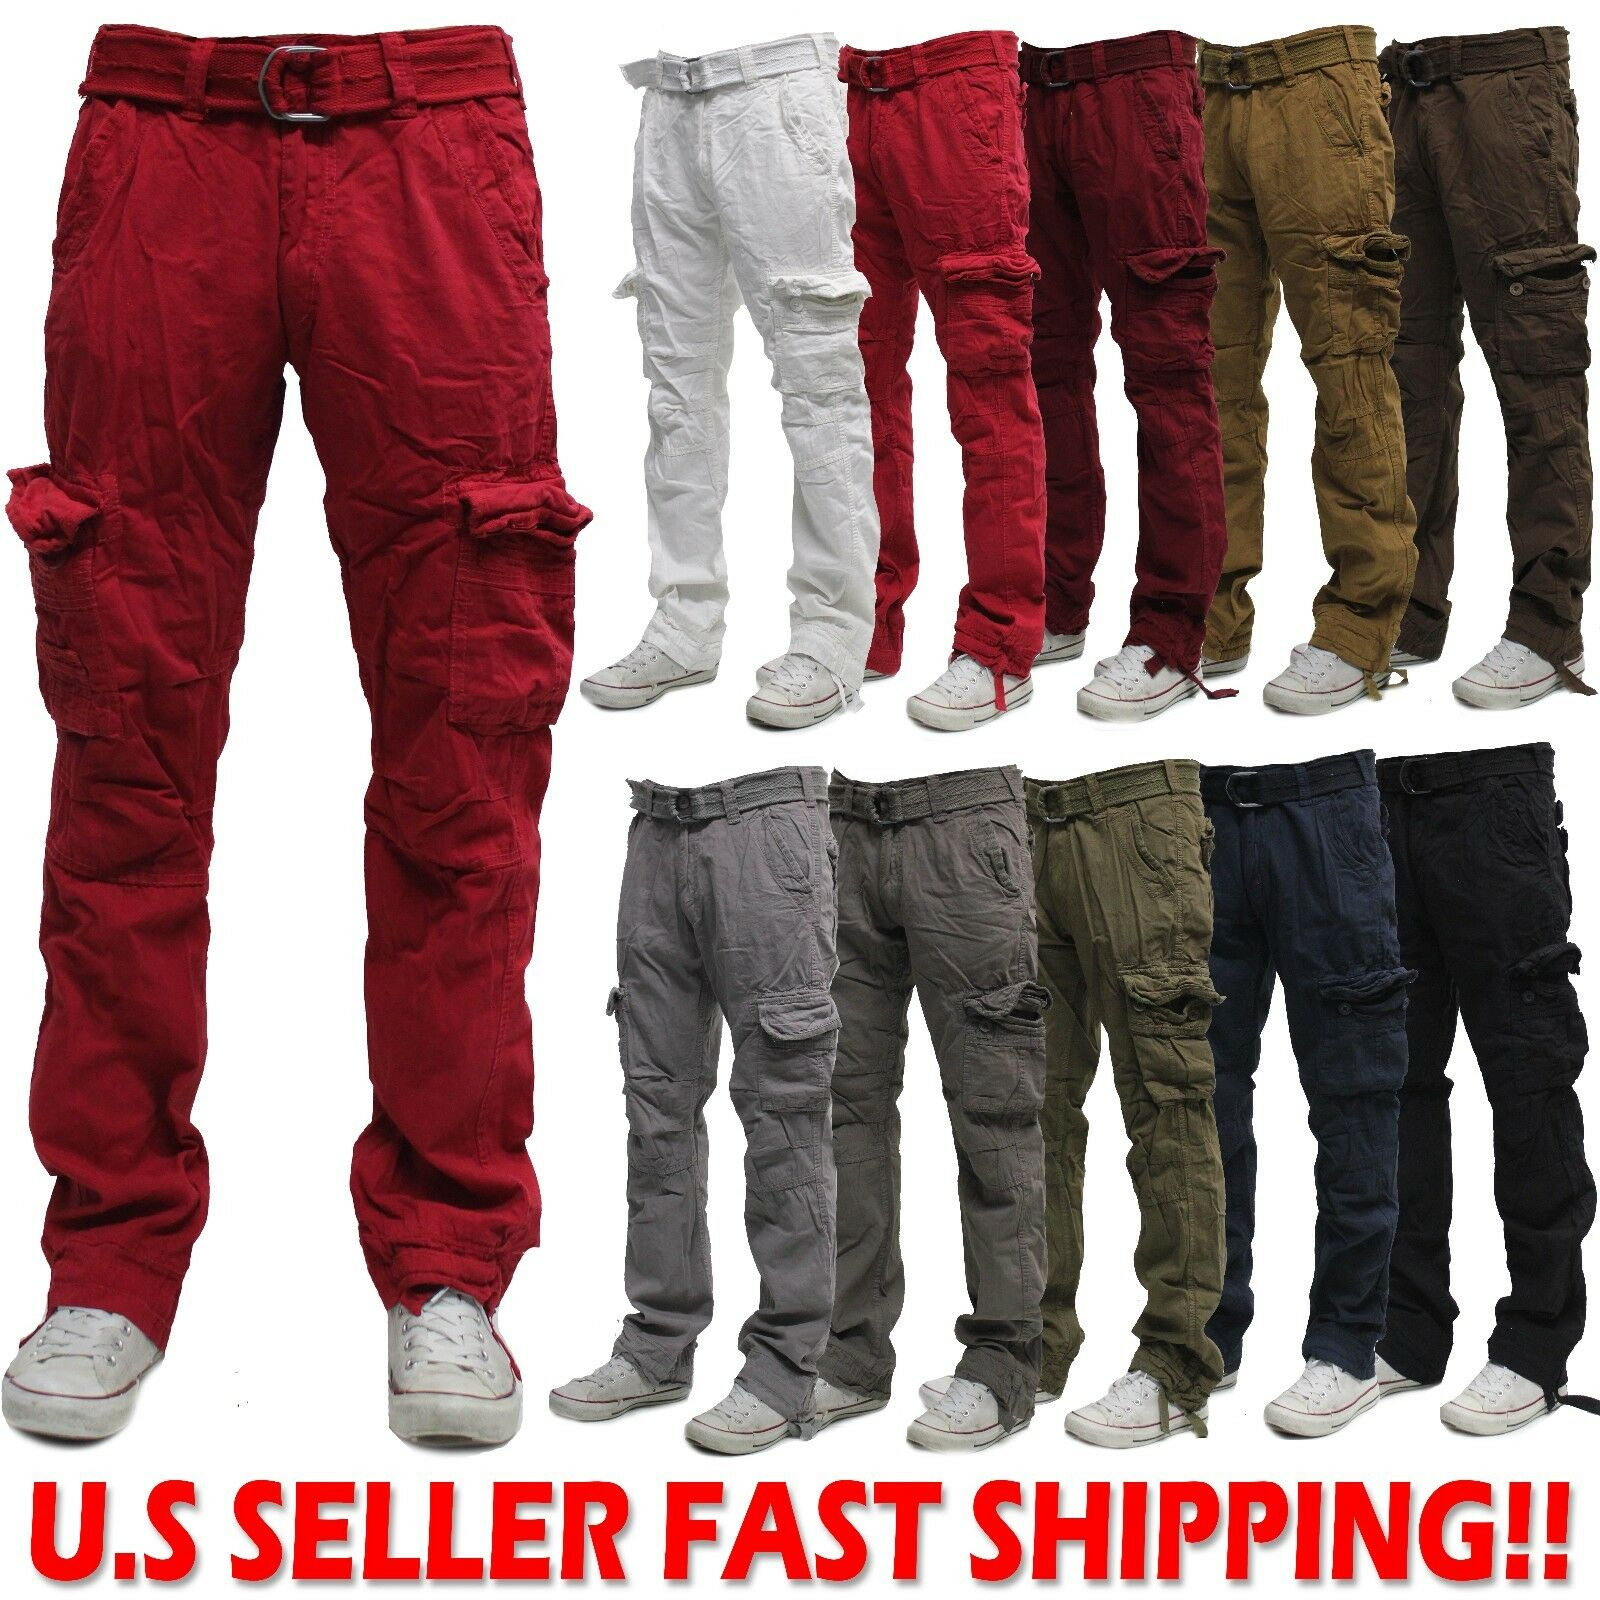 Military Men's Cotton Cargo Pants Combat Camouflage Solid Ar